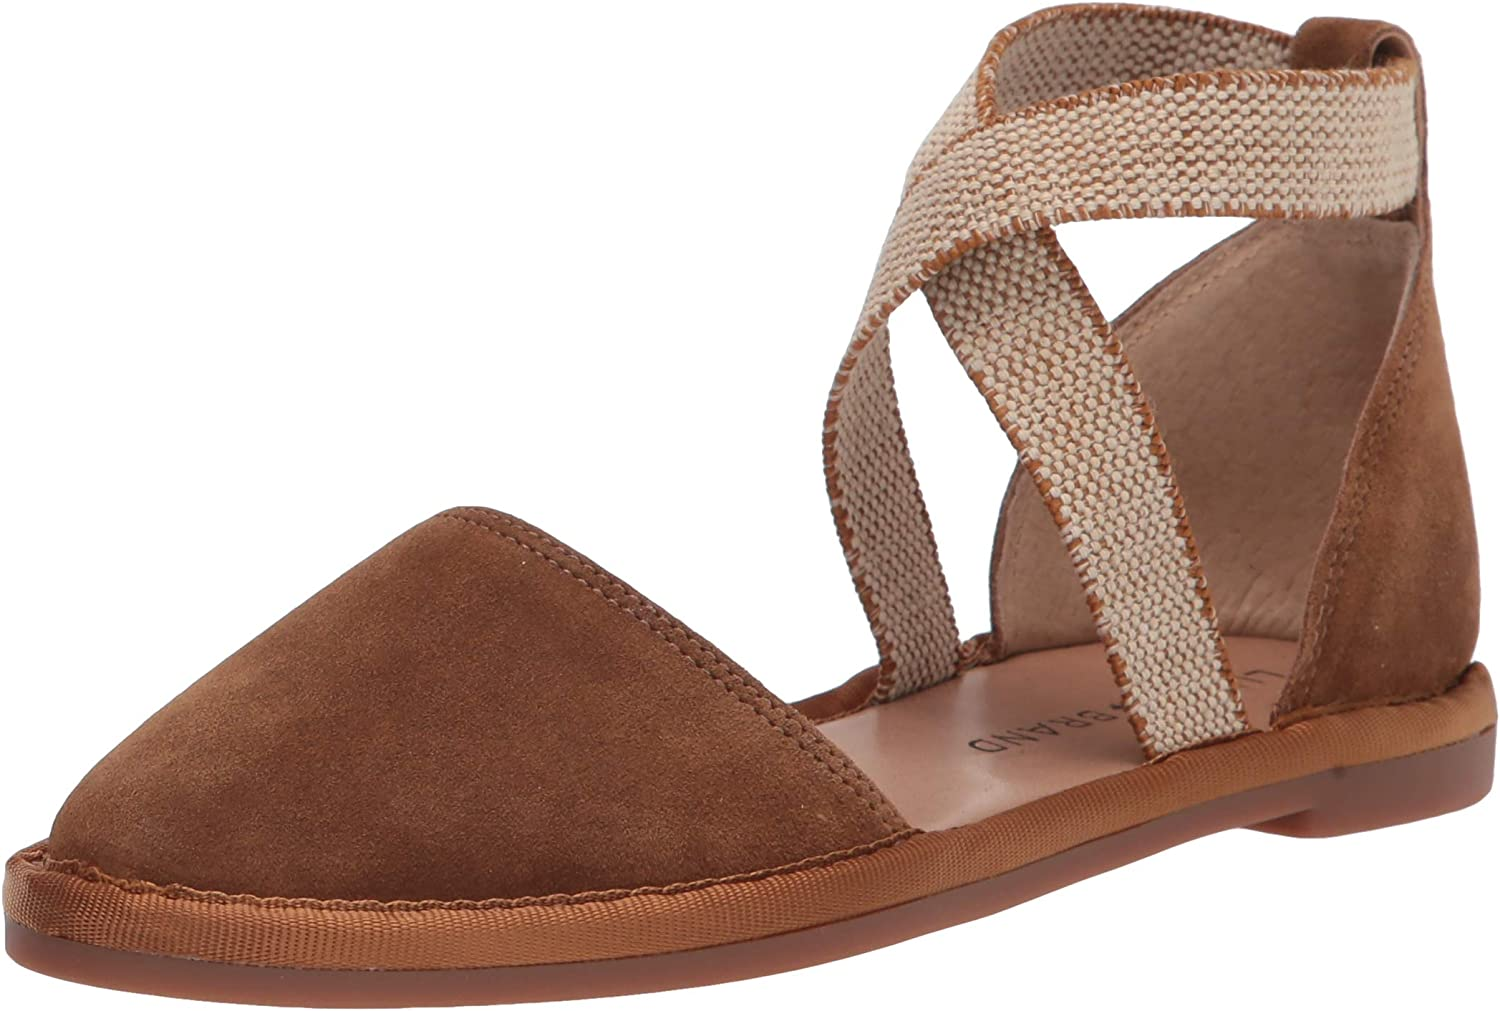 Lucky Brand Women's Atlyi Large-scale sale Ballet Flat Max 58% OFF